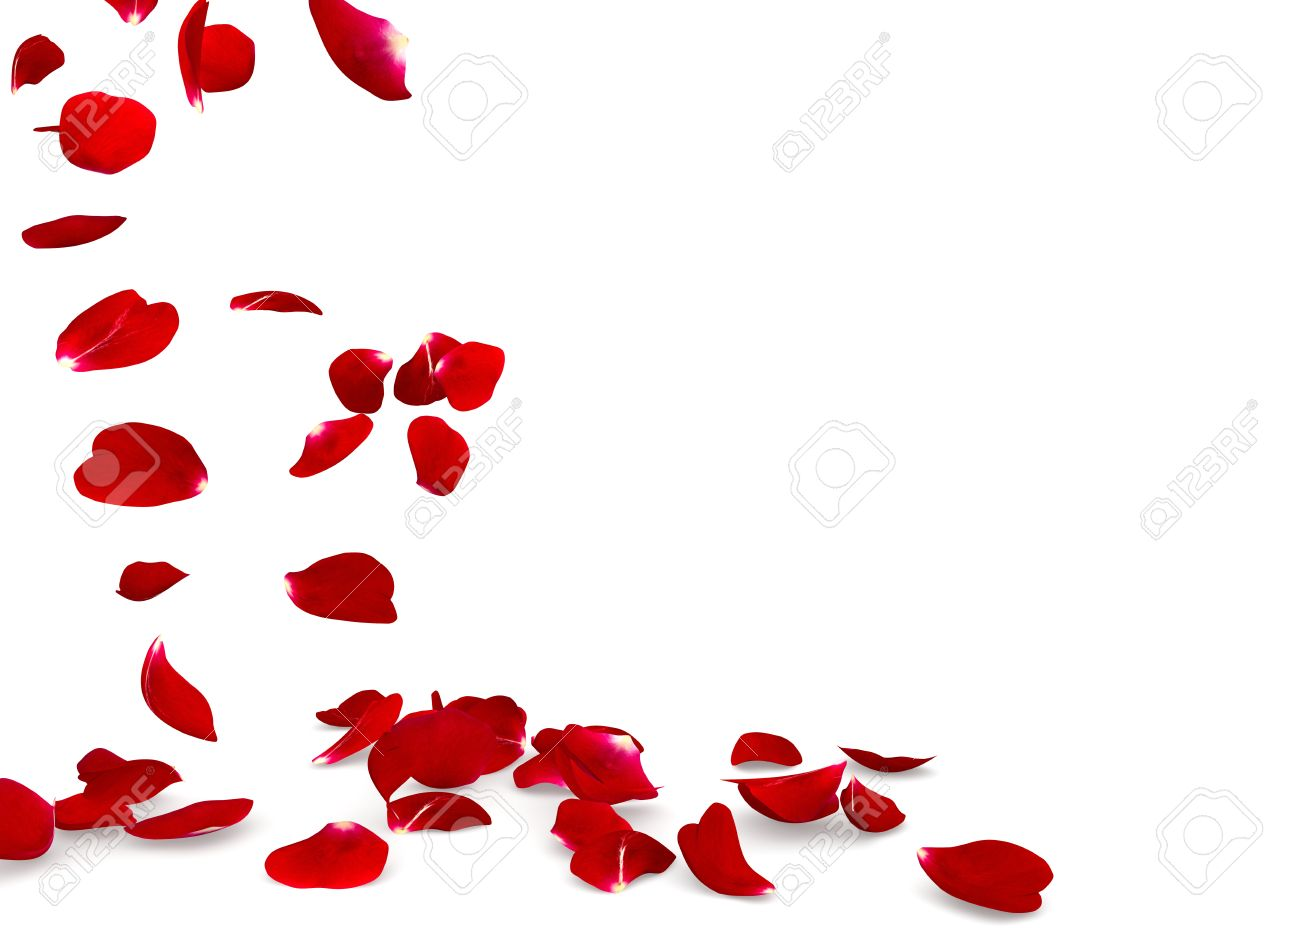 rose petals fall to the floor isolated background 3d render stock